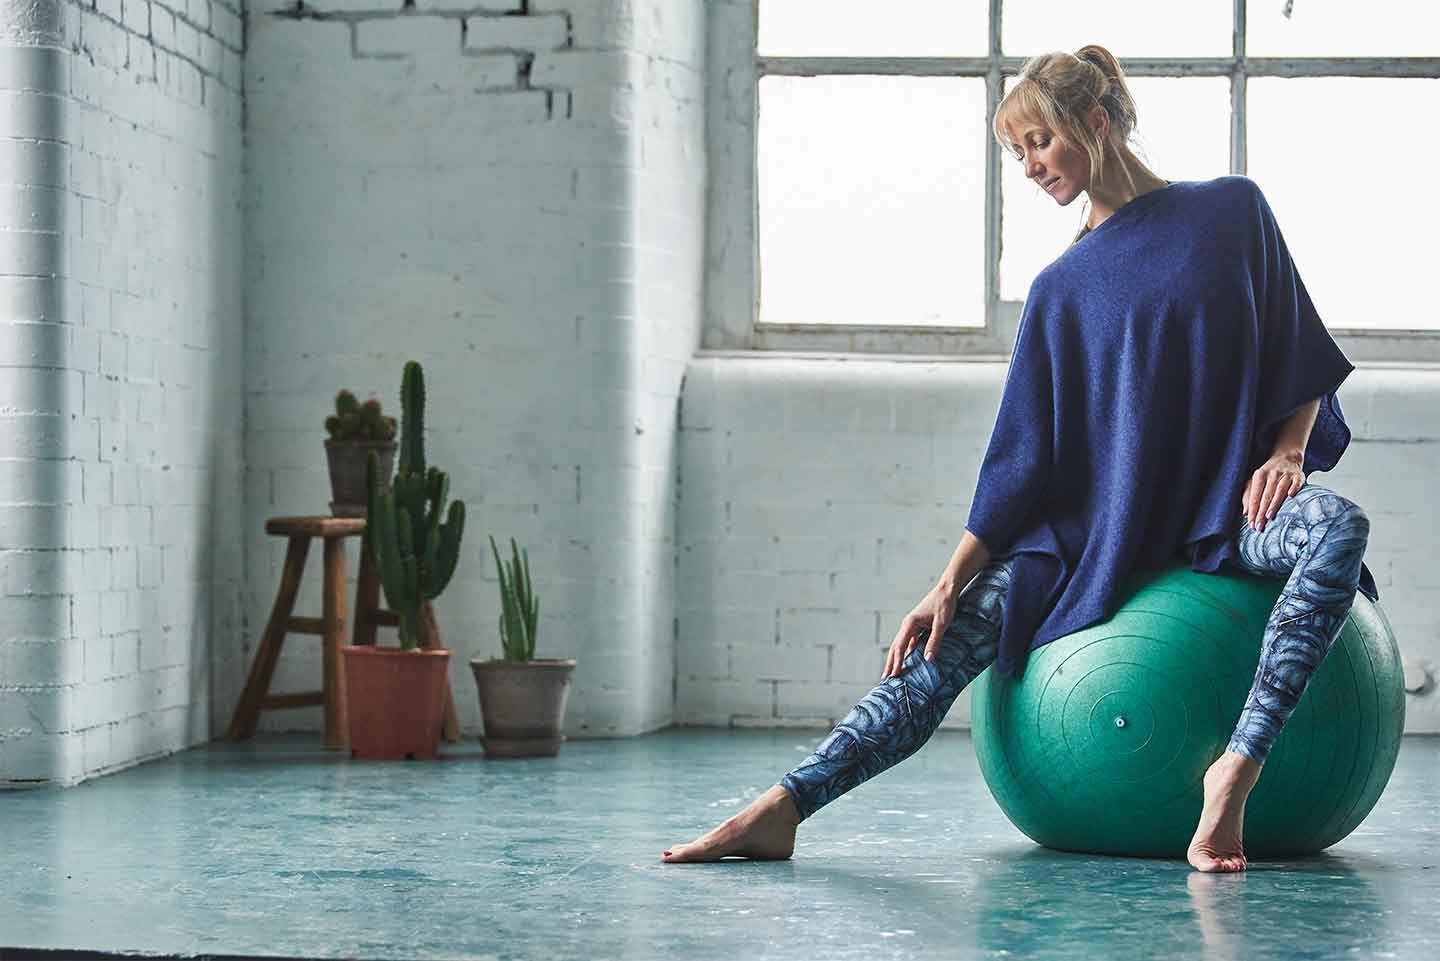 Women-doing-yoga-in-front-of-a-window-sat-on-a-yoga-ball-in-sportswear-and-blue-cashmere-poncho